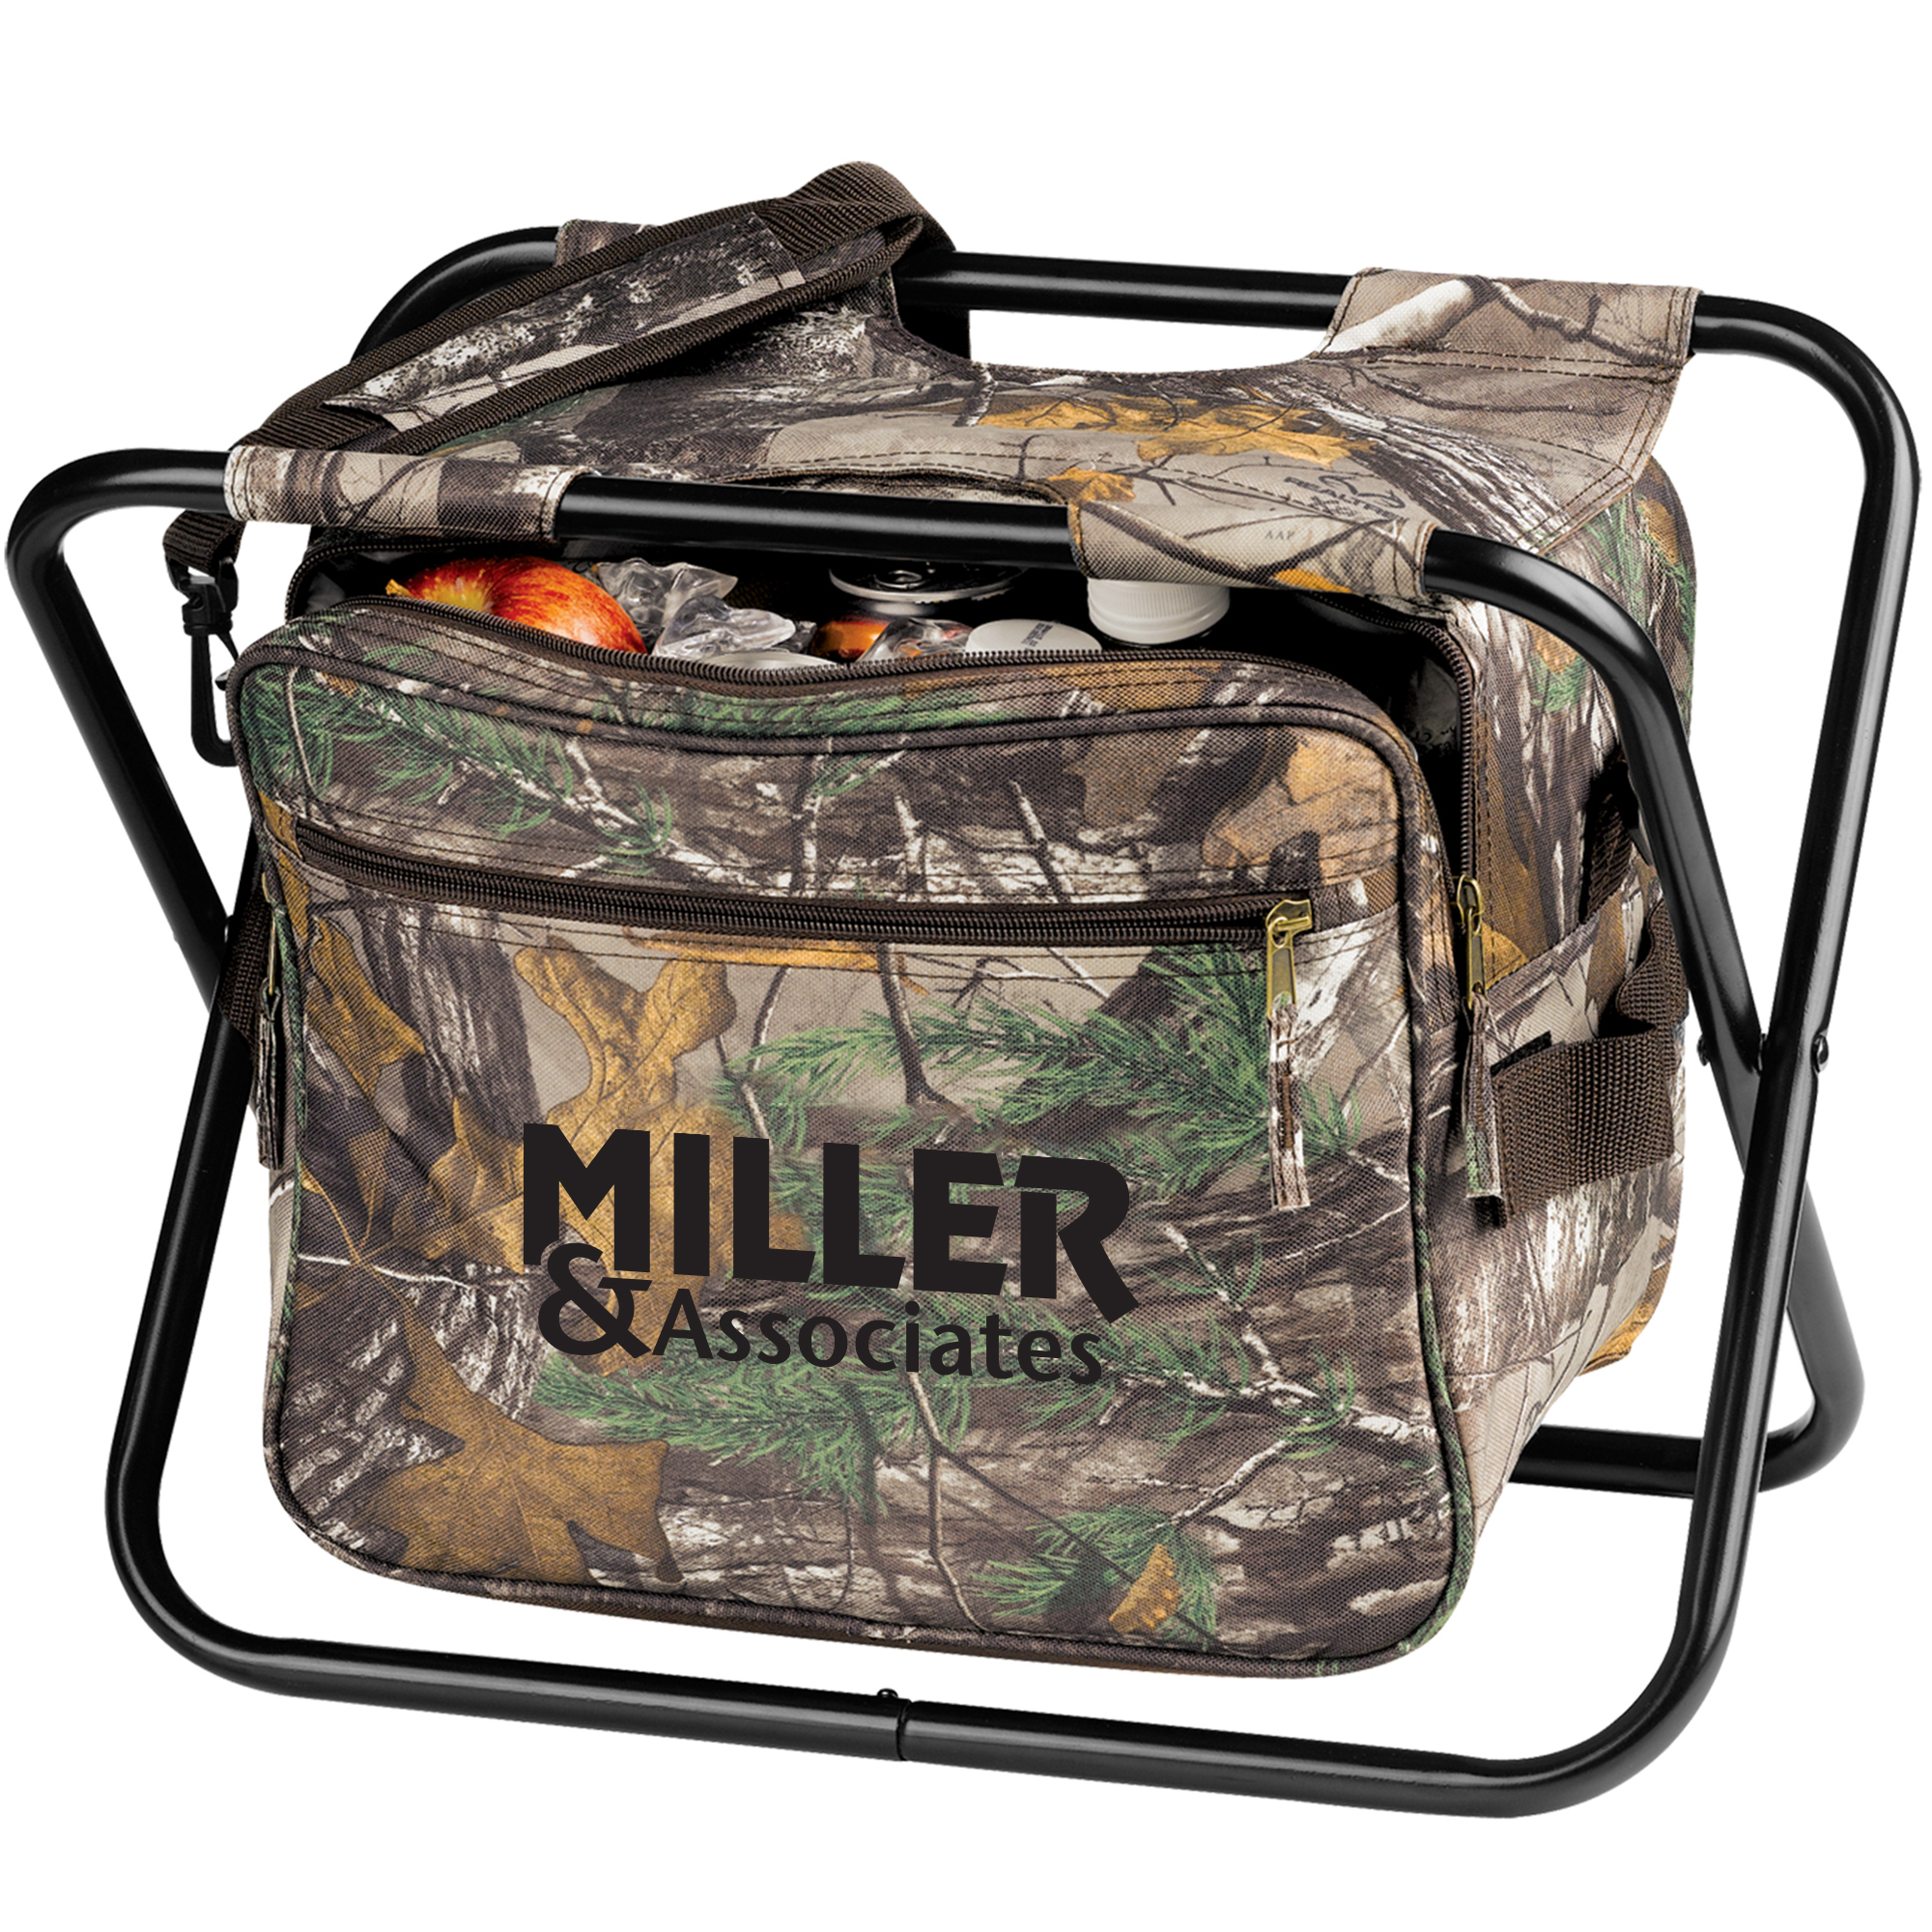 Realtree 174 Camo Seat Cooler Promotions Now